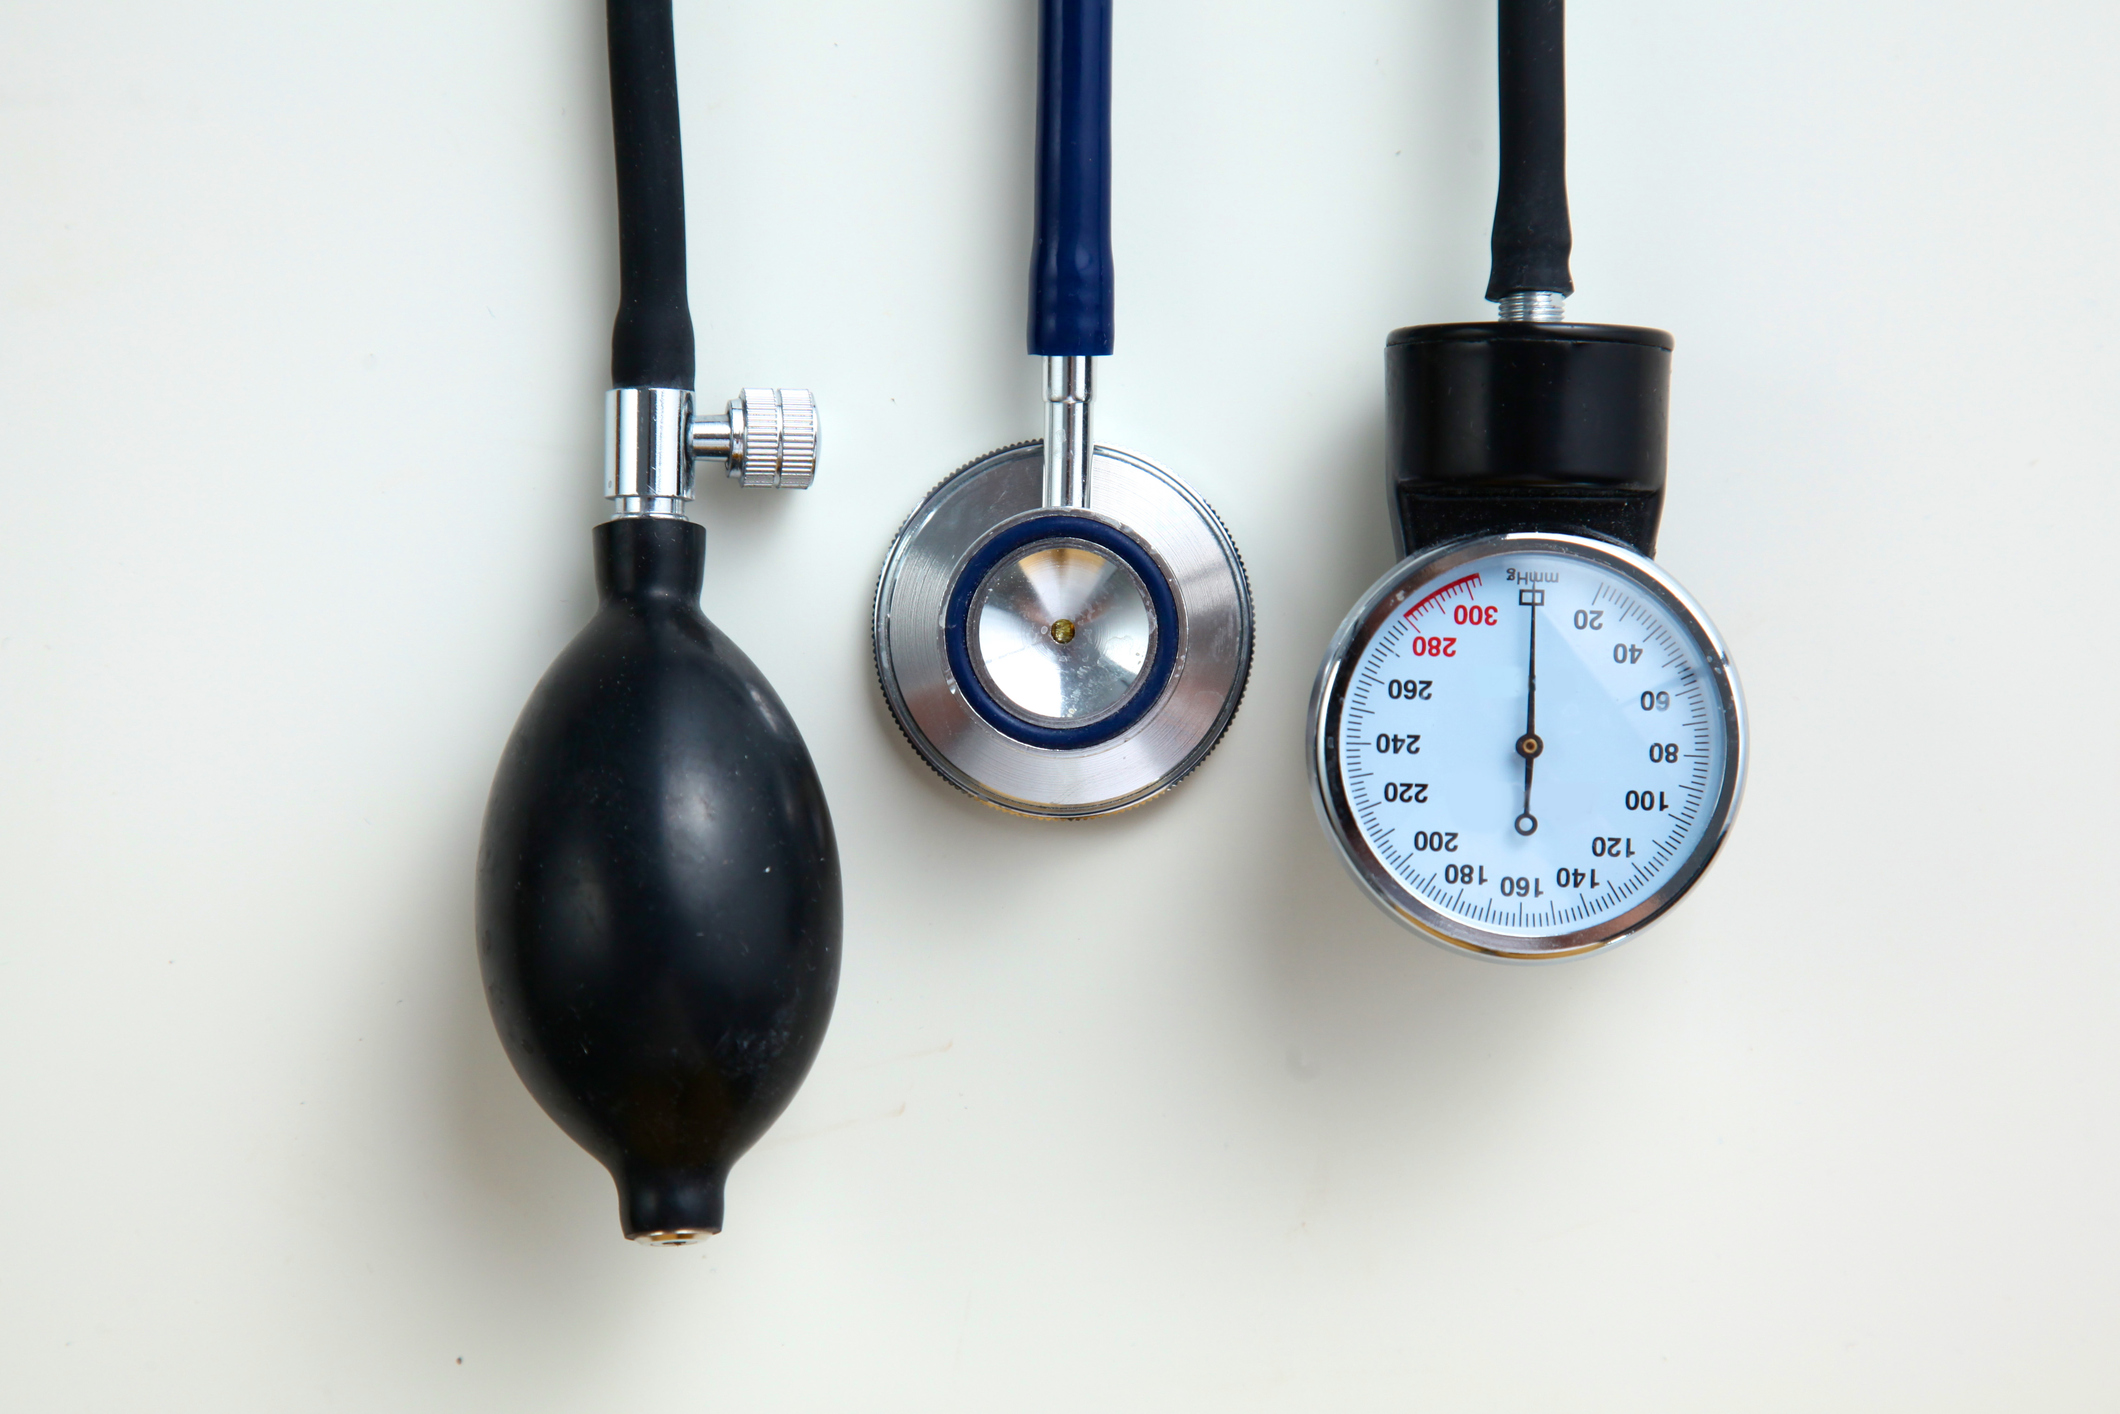 What causes low blood pressure?